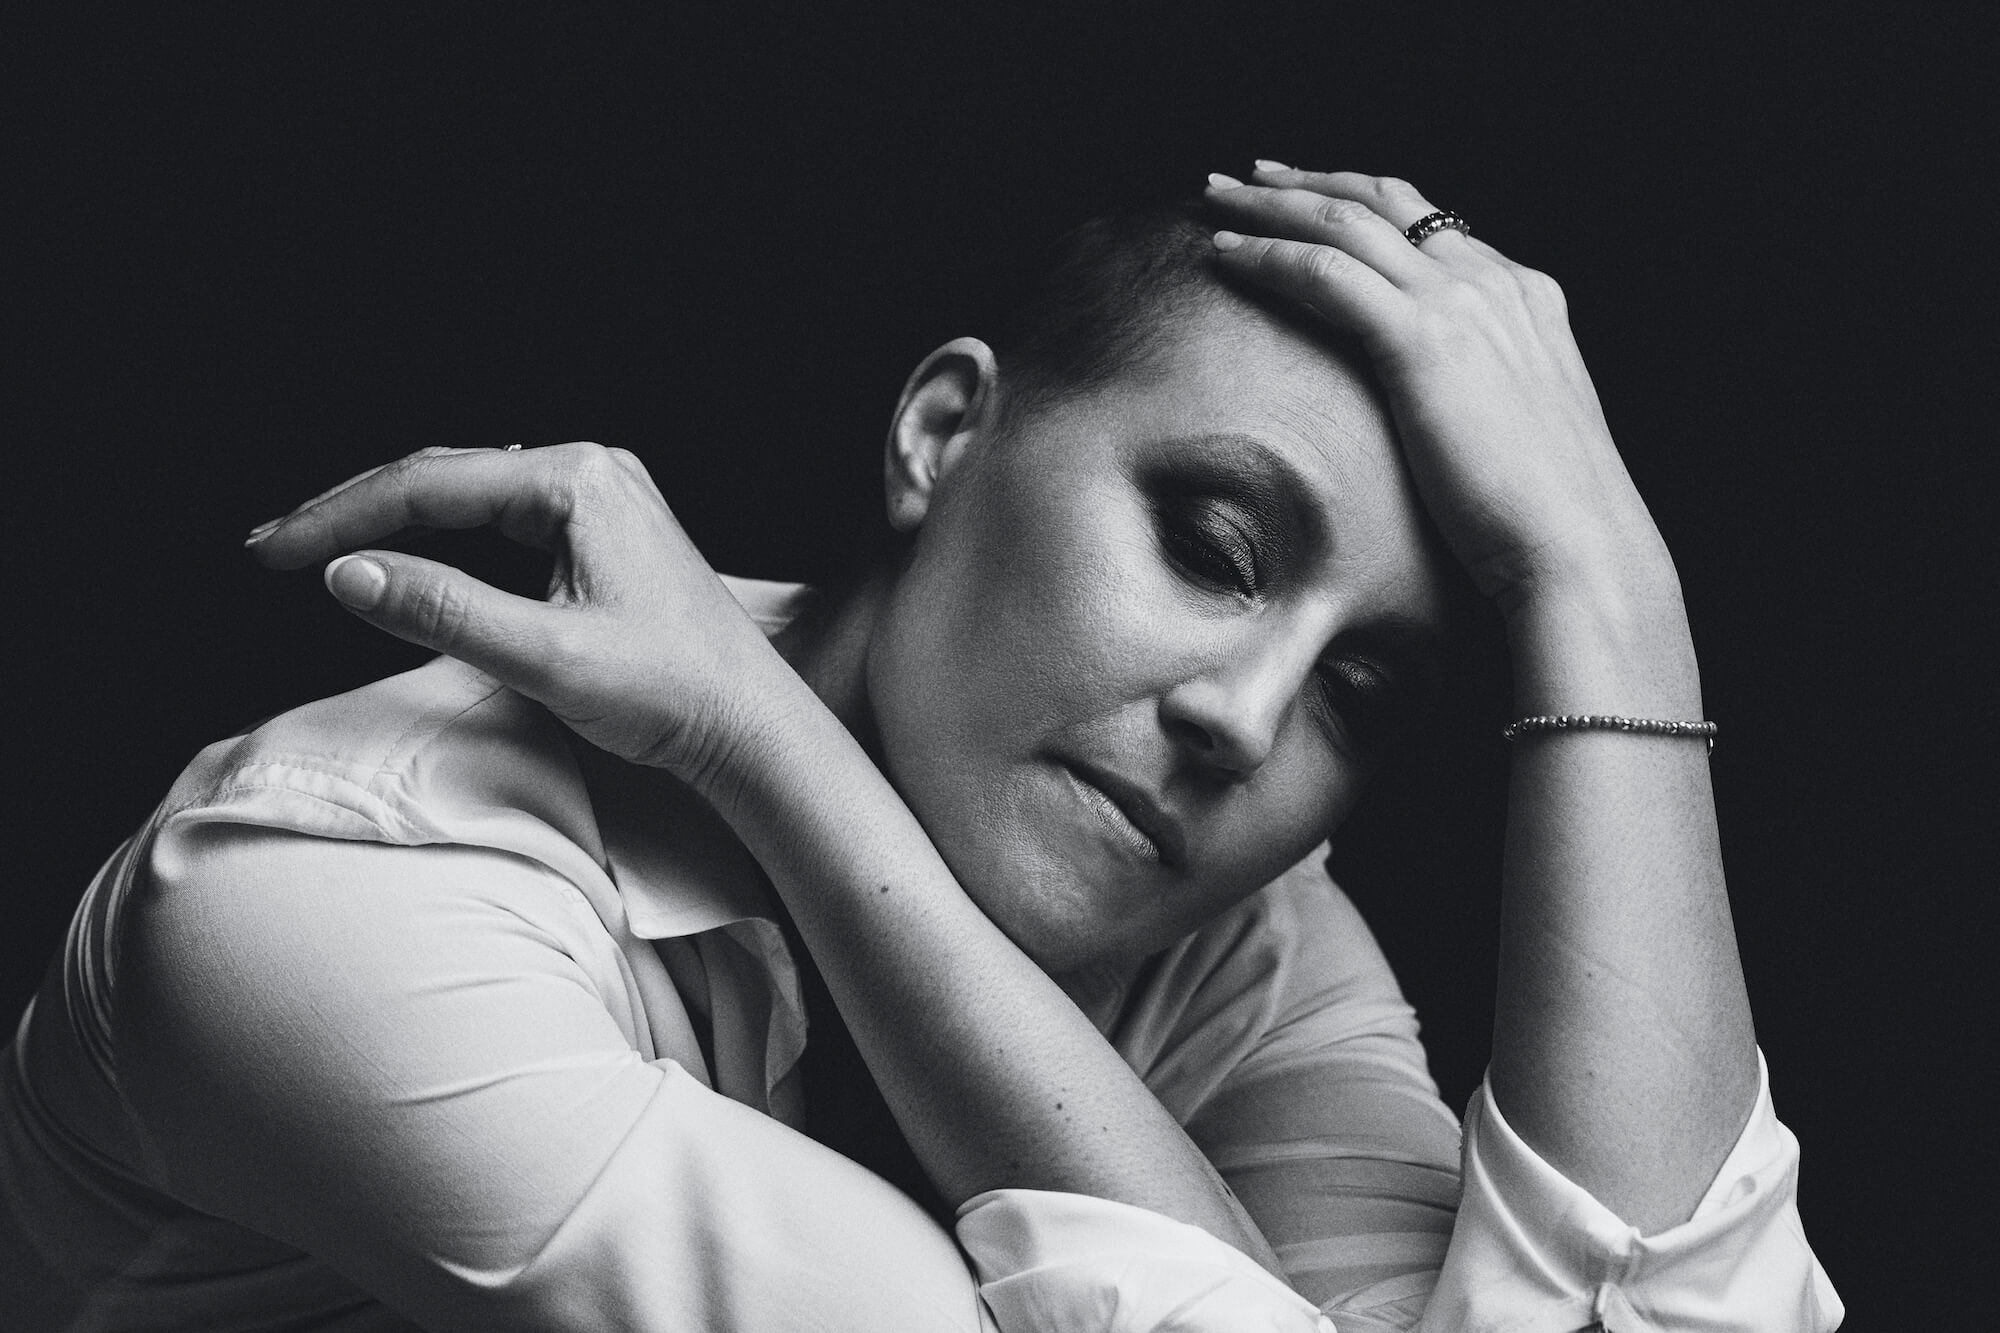 Portrait Series of Daniel Cati, black and white portrait of woman with buzz cut